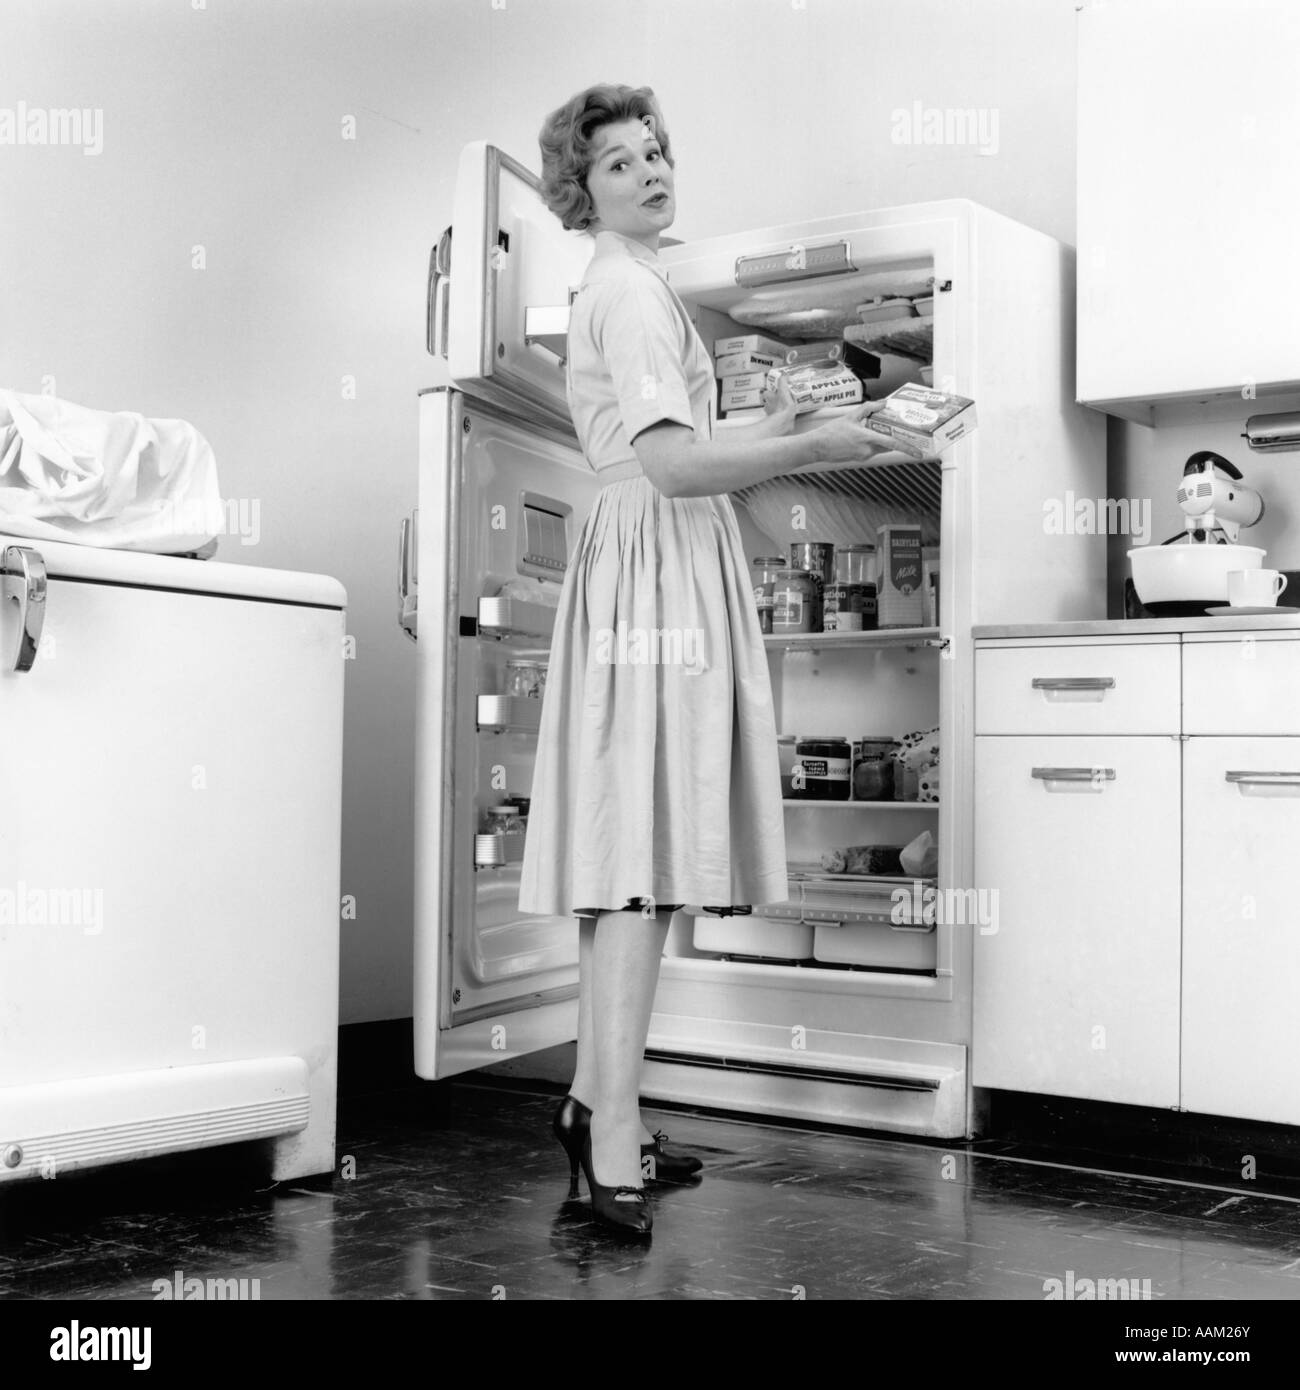 1950s WOMAN STANDING IN KITCHEN BY OPEN REFRIGERATOR Stock Photo ...